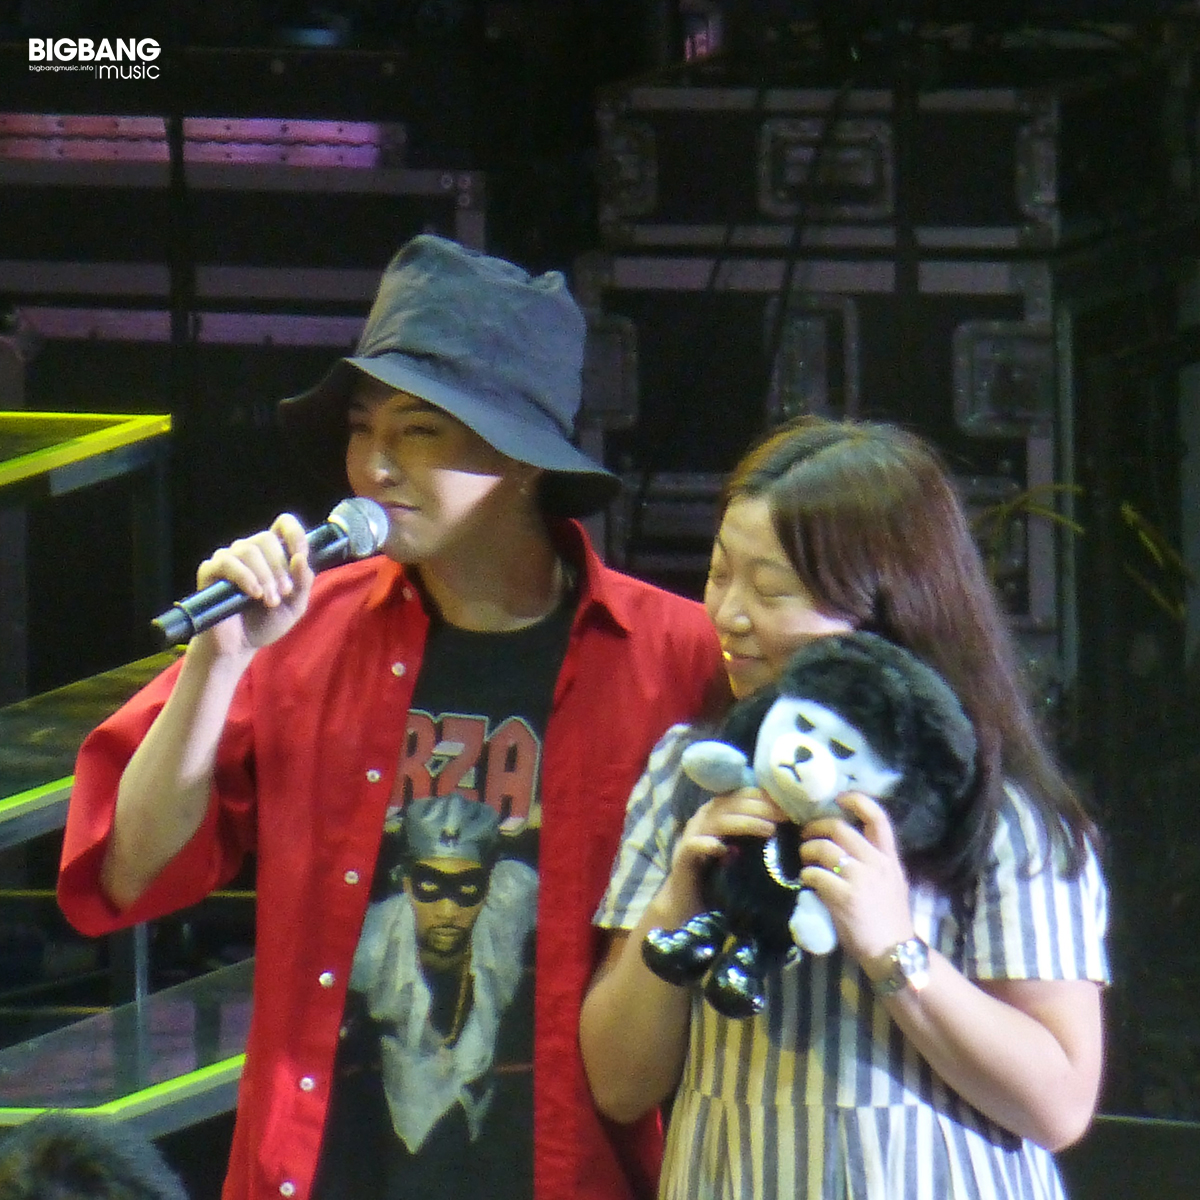 BBmusic-BIGBANG-Hong-Kong-Day-1-2016-07-22-06